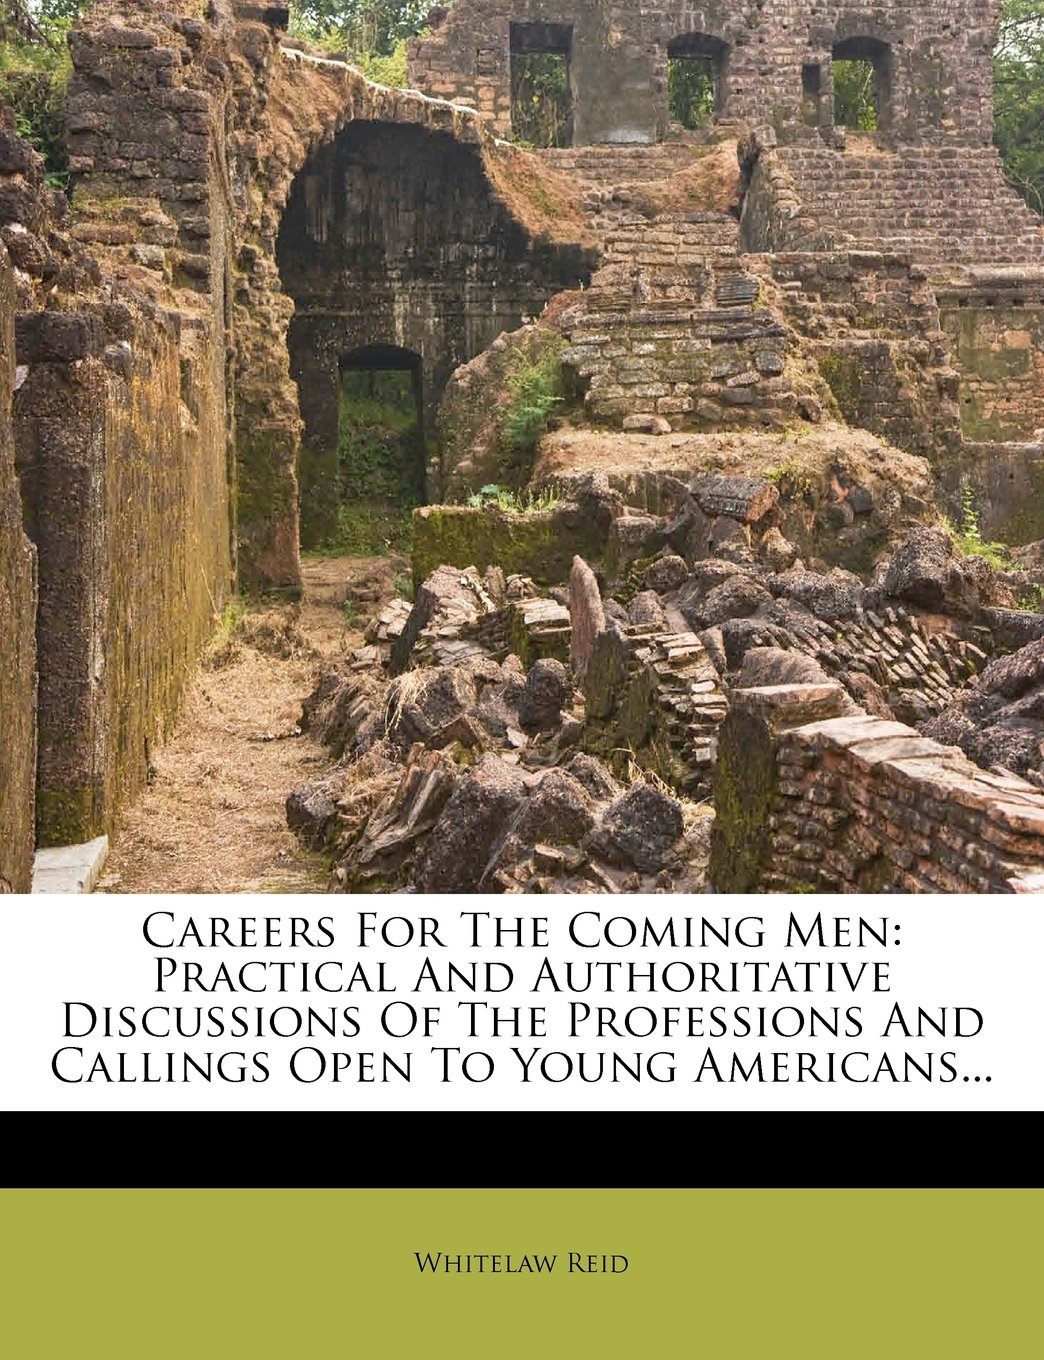 Download Careers For The Coming Men: Practical And Authoritative Discussions Of The Professions And Callings Open To Young Americans... PDF